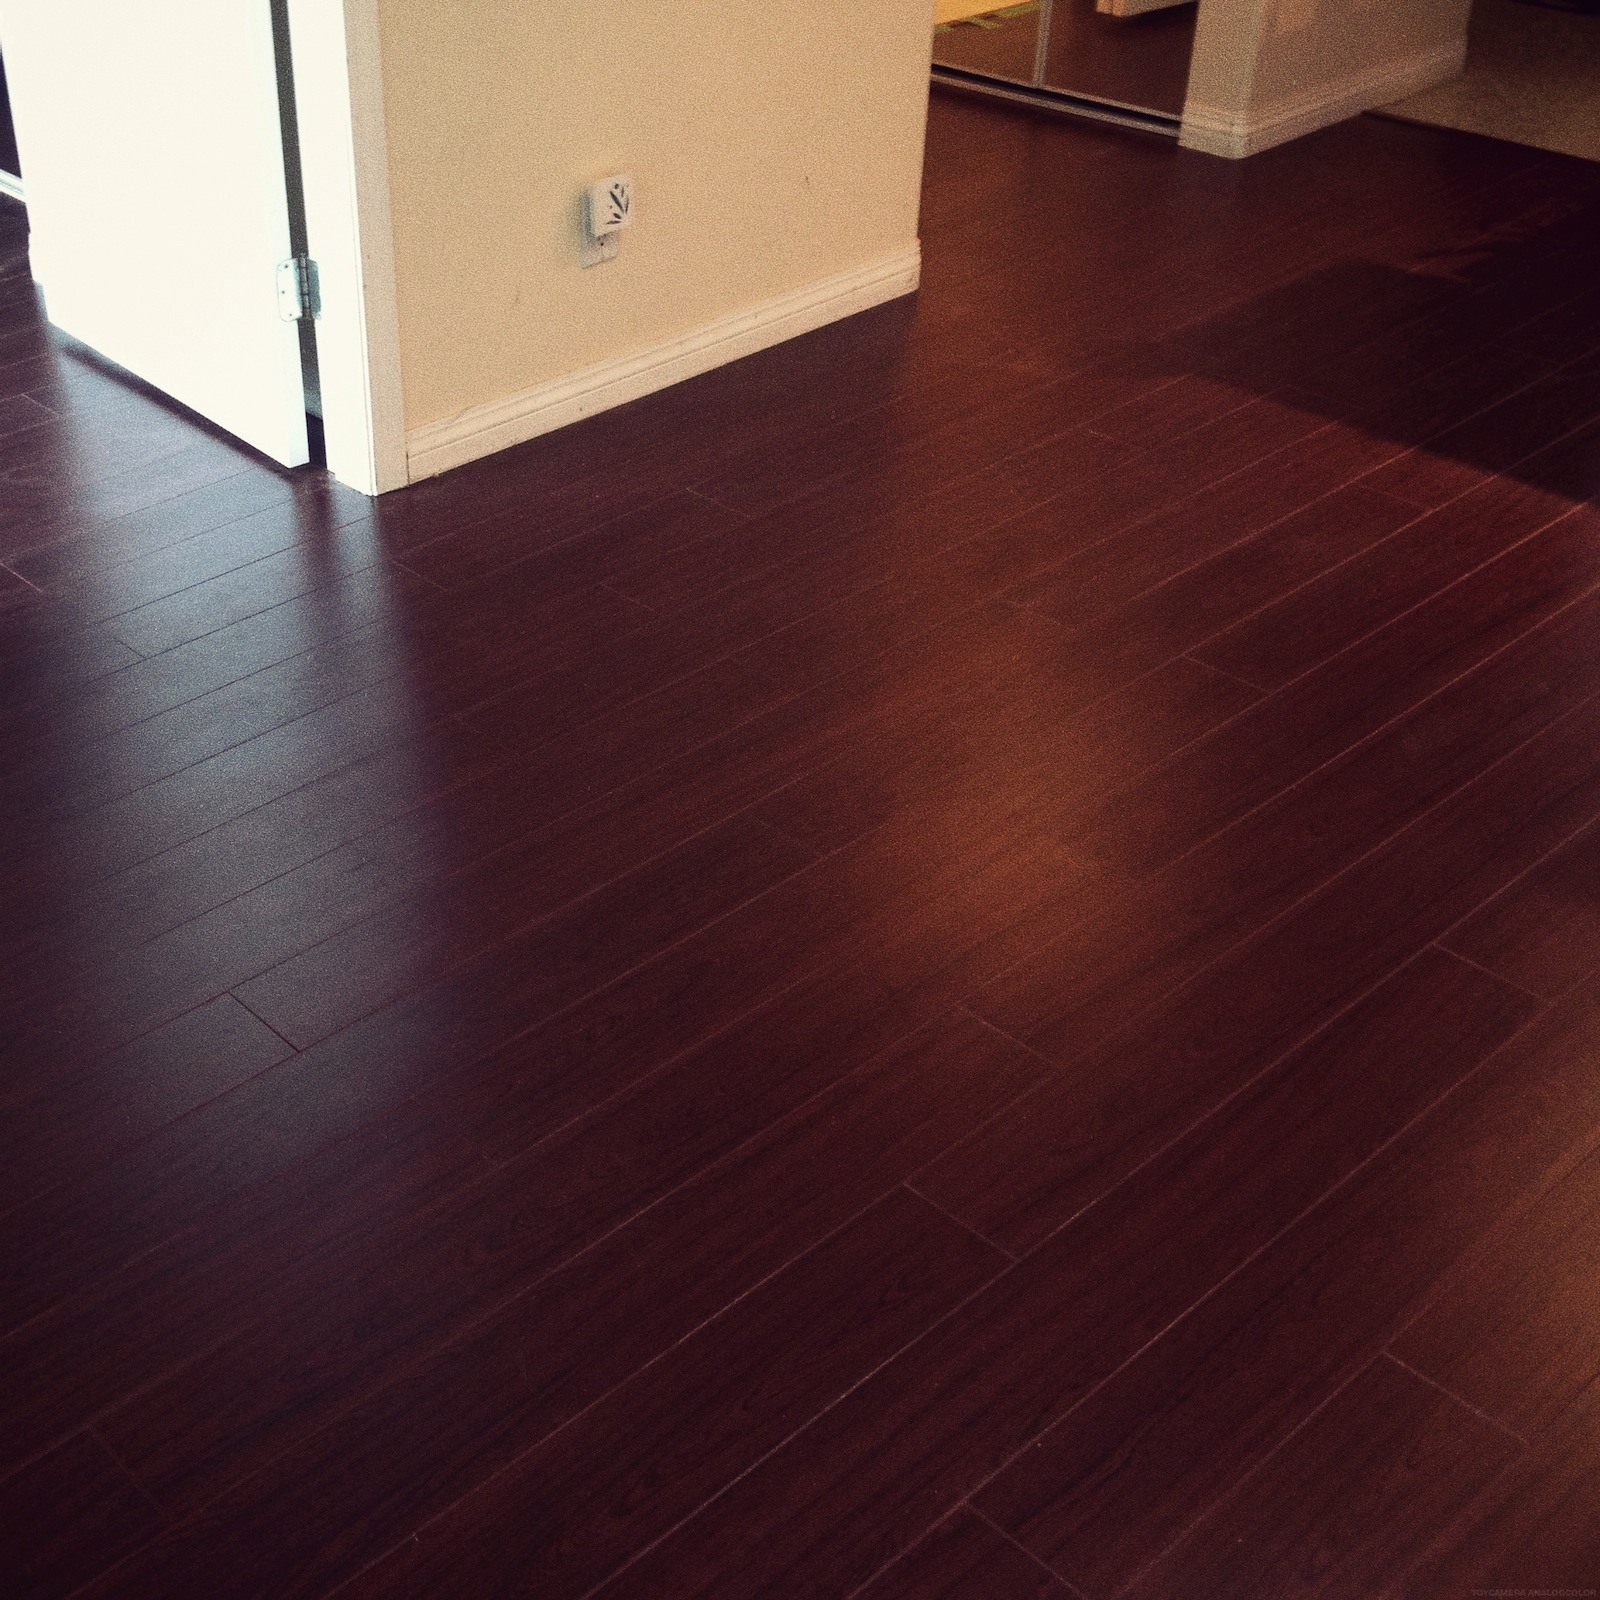 Cherry laminate flooring cherry wood laminate flooring laplounge wood laminate flooring - mountain  cherry ULFARFR